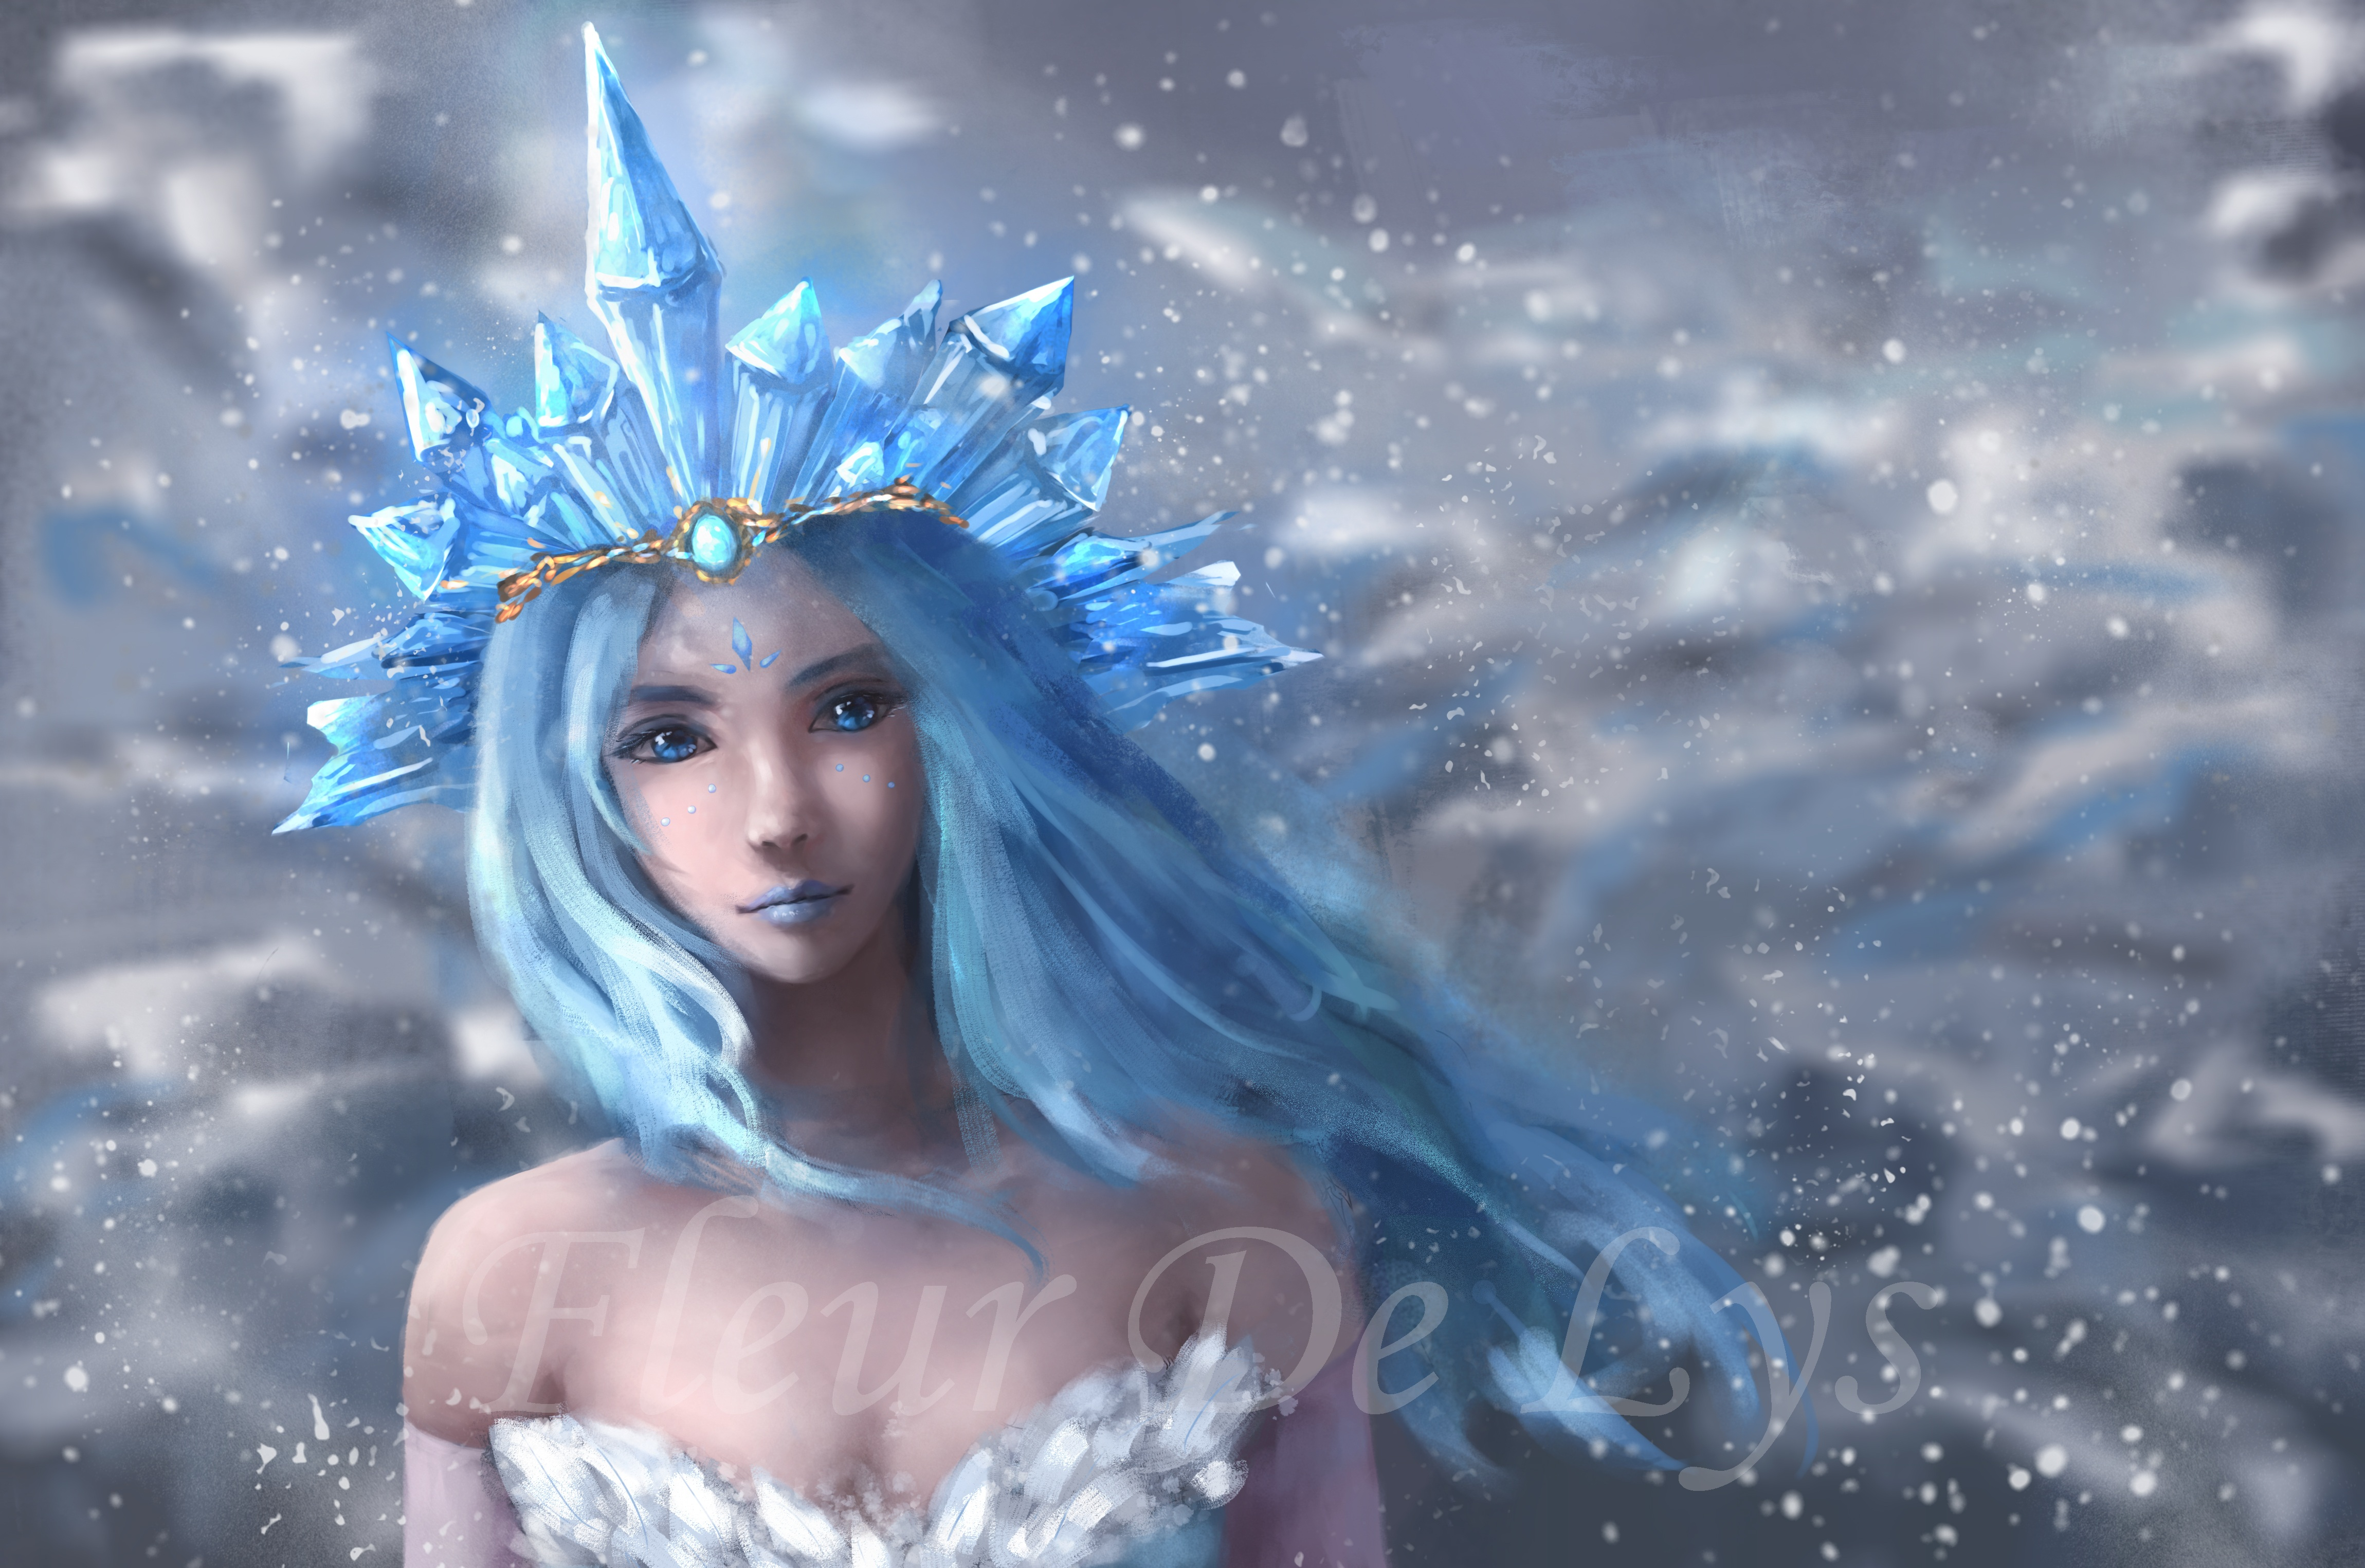 Crystal Maiden 4k Ultra Hd Wallpaper Background Image